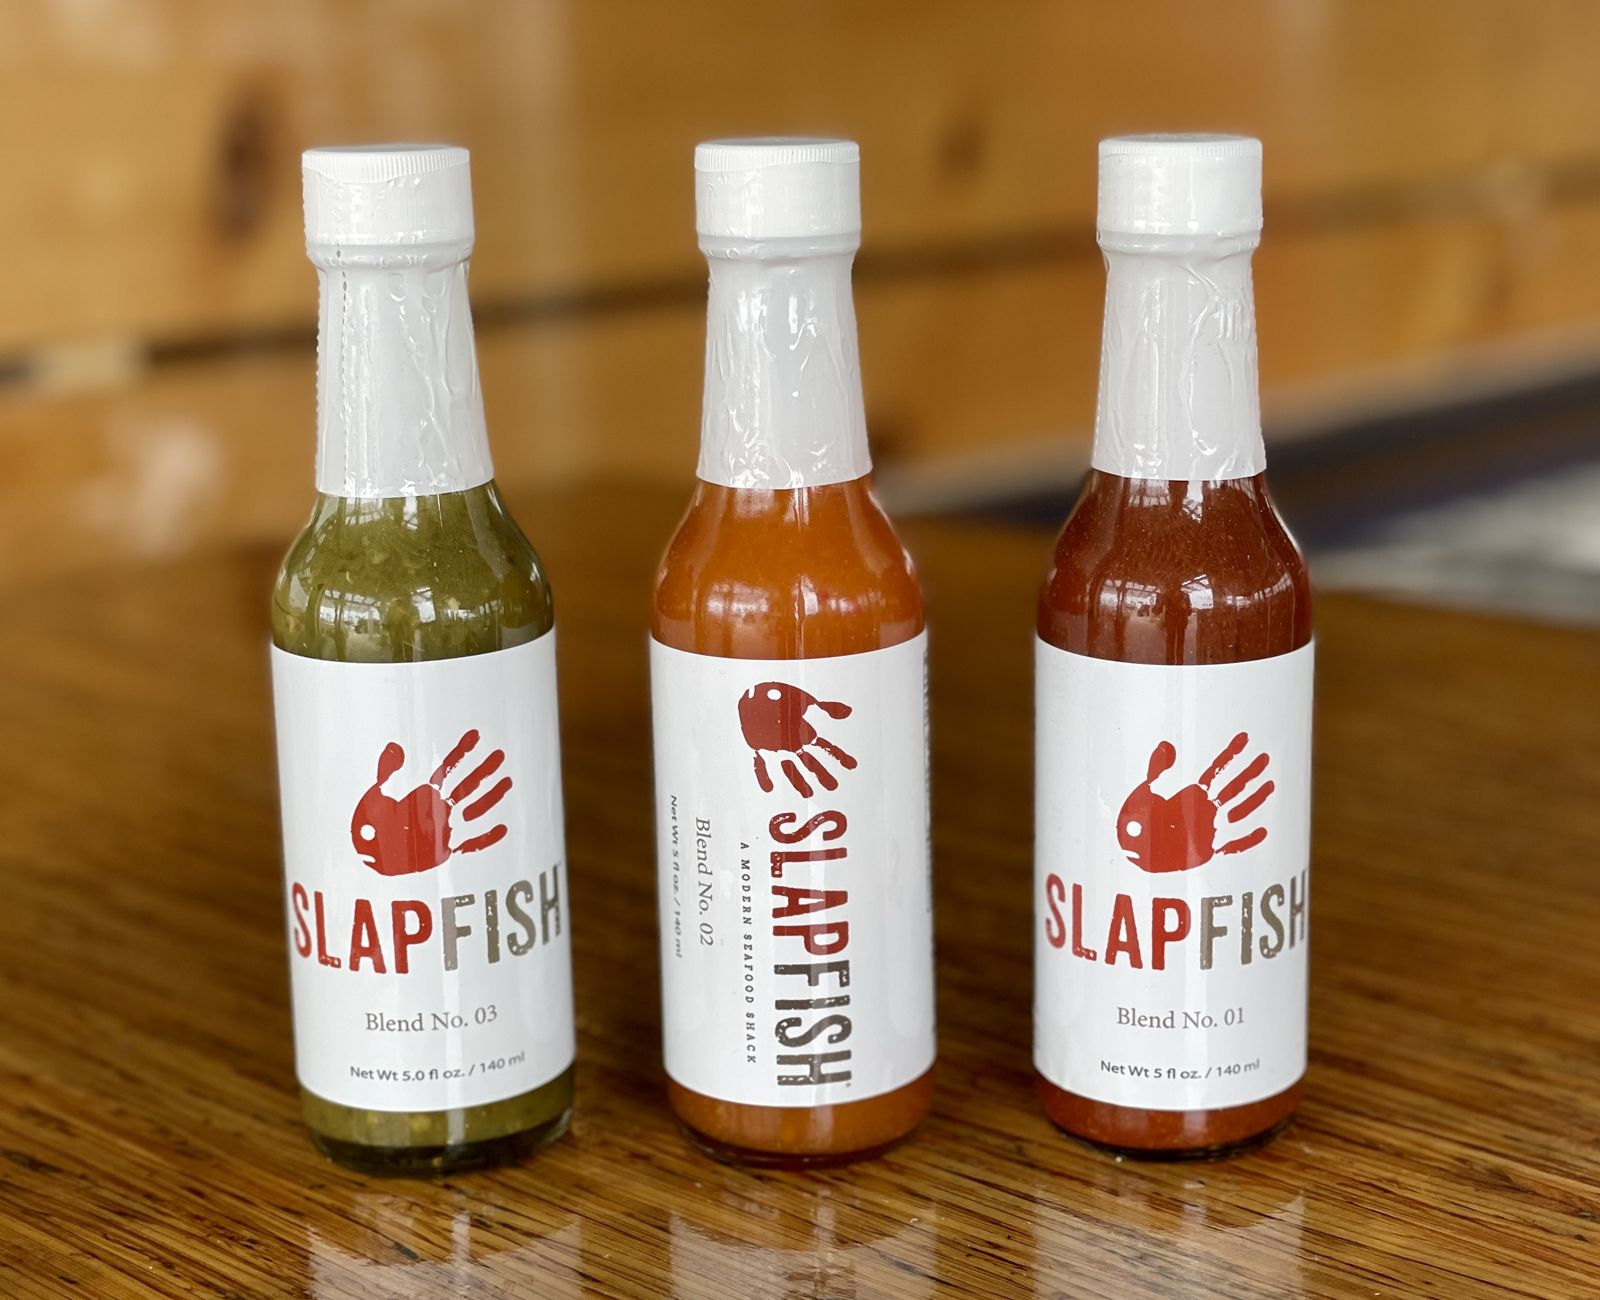 Slapfish, the modern seafood shack with 23 locations across the country, has launched a line of signature hot sauces for retail sale online. Additional sauces and seasonings will be added later this year.